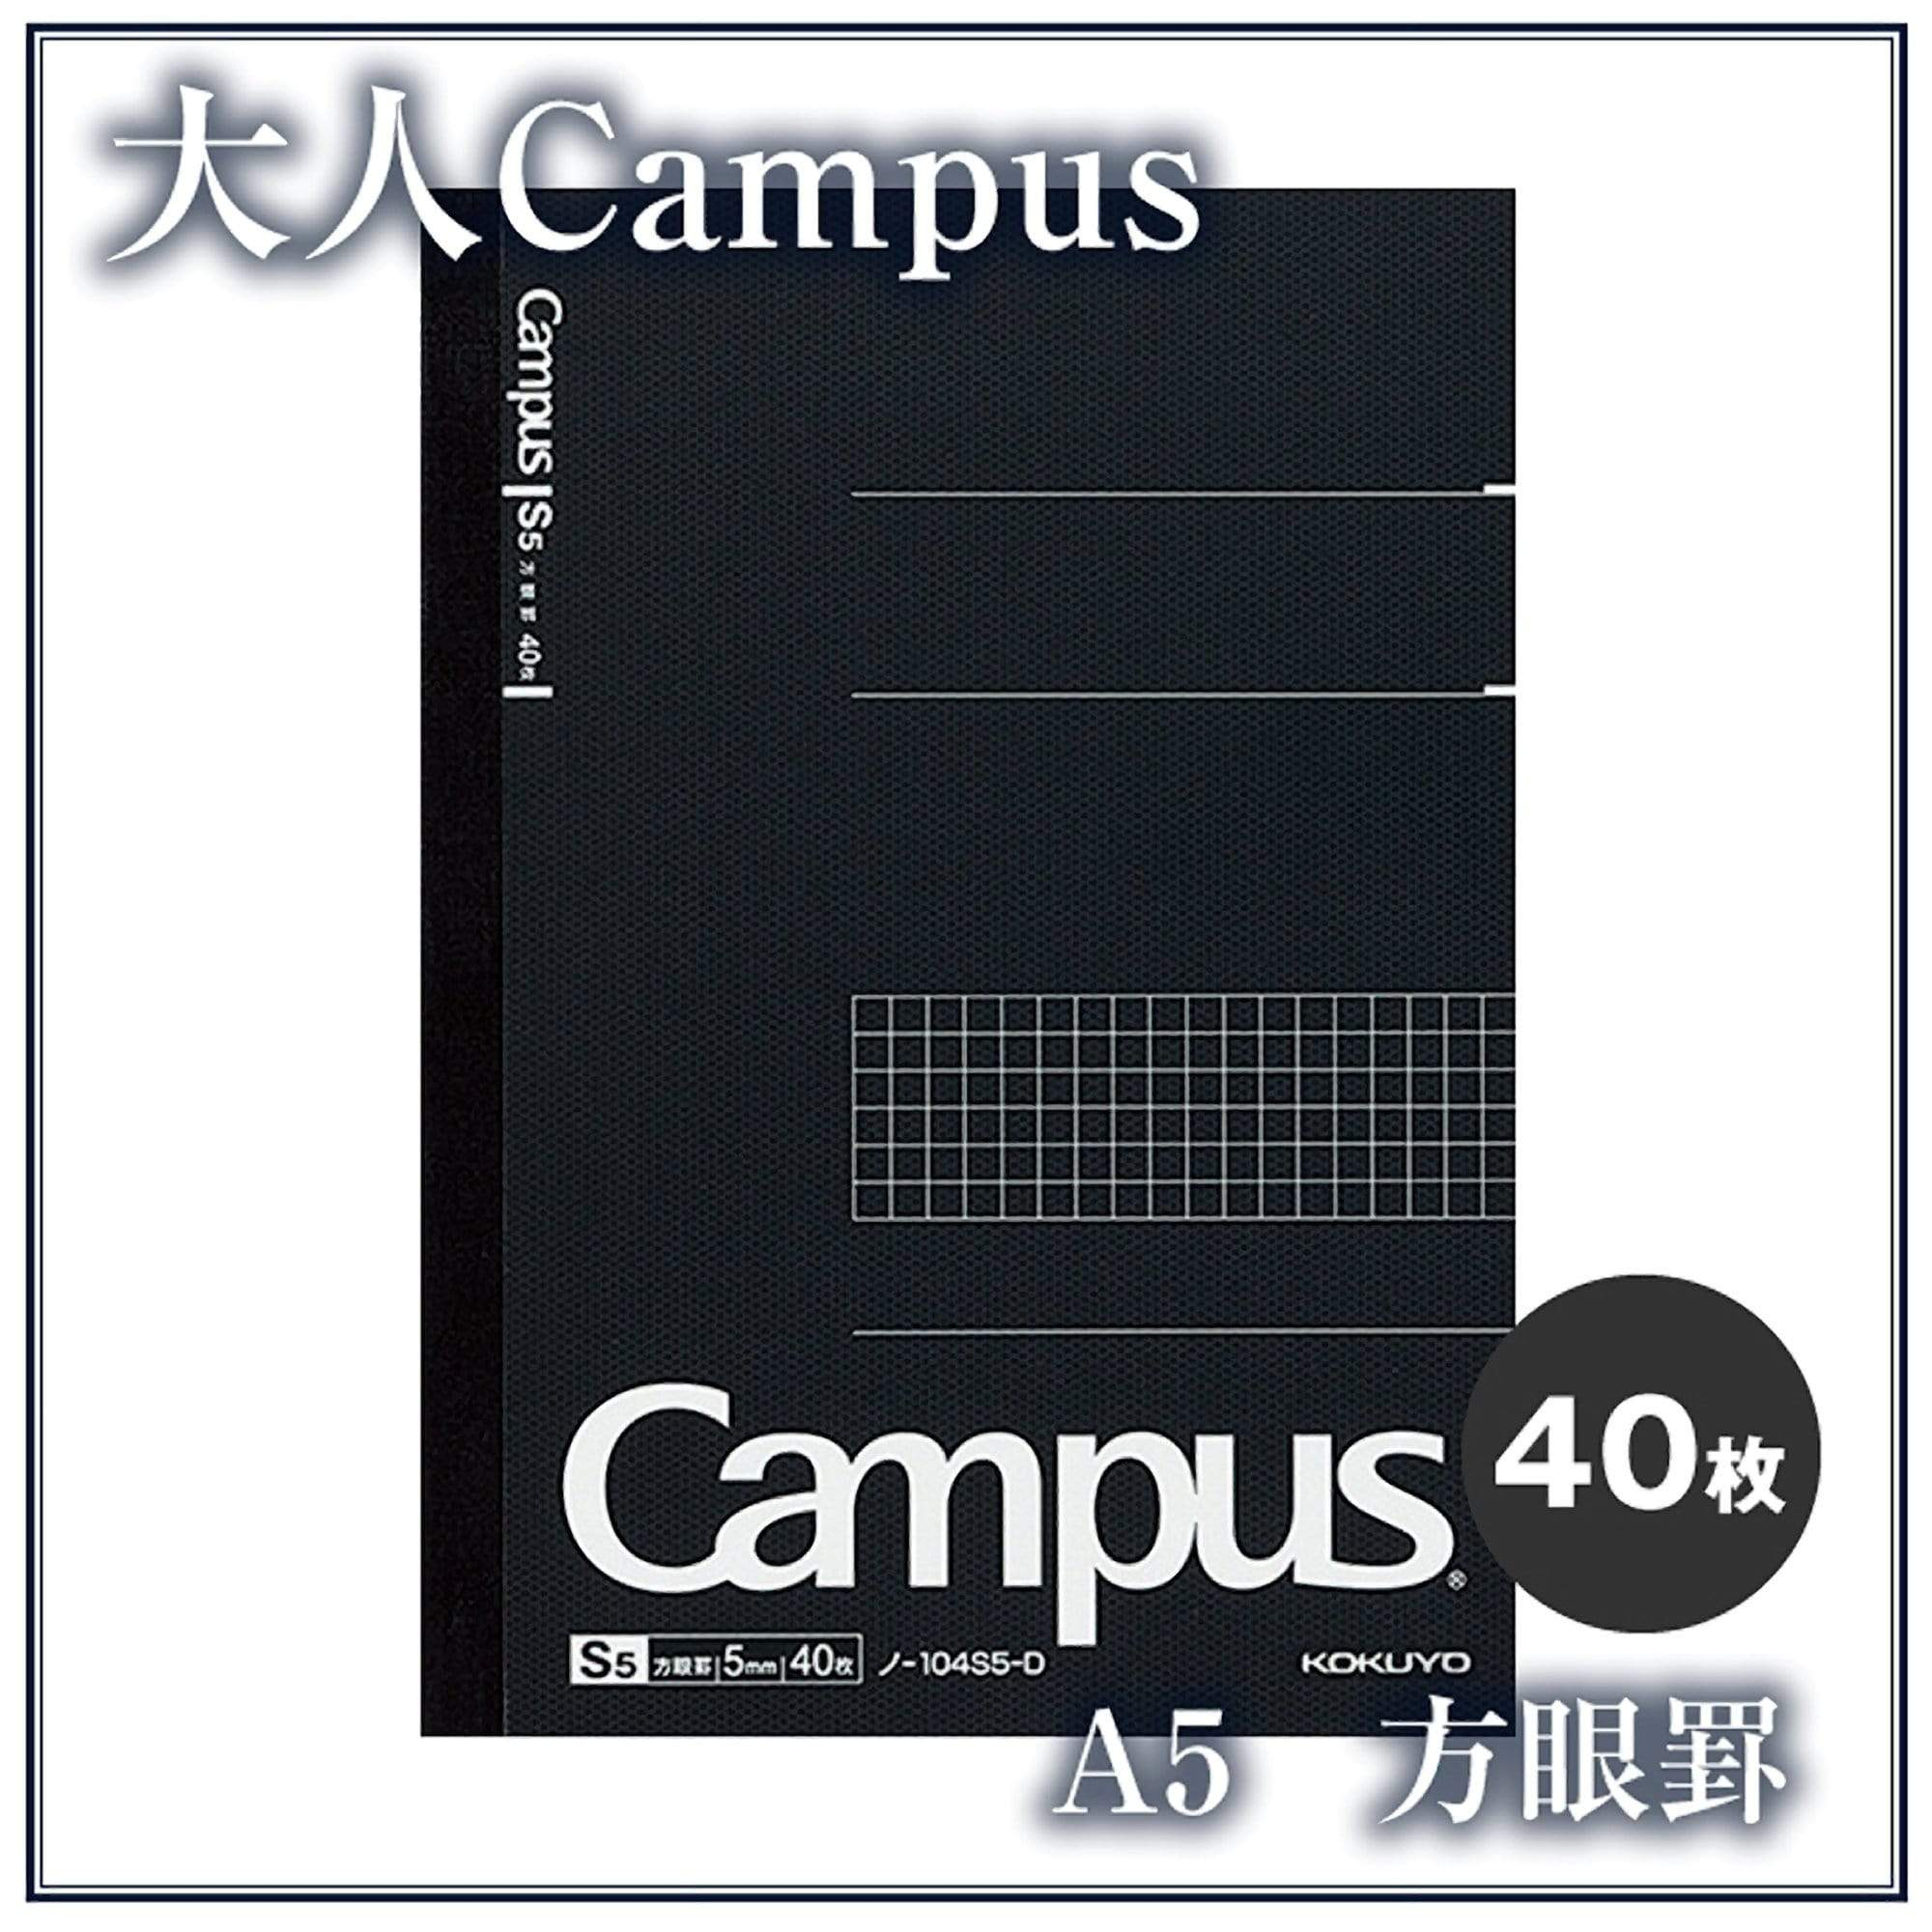 Kokuyo Campus Notebook Black 5mm Grid | A5 40 Sheet - The Stationery Life!